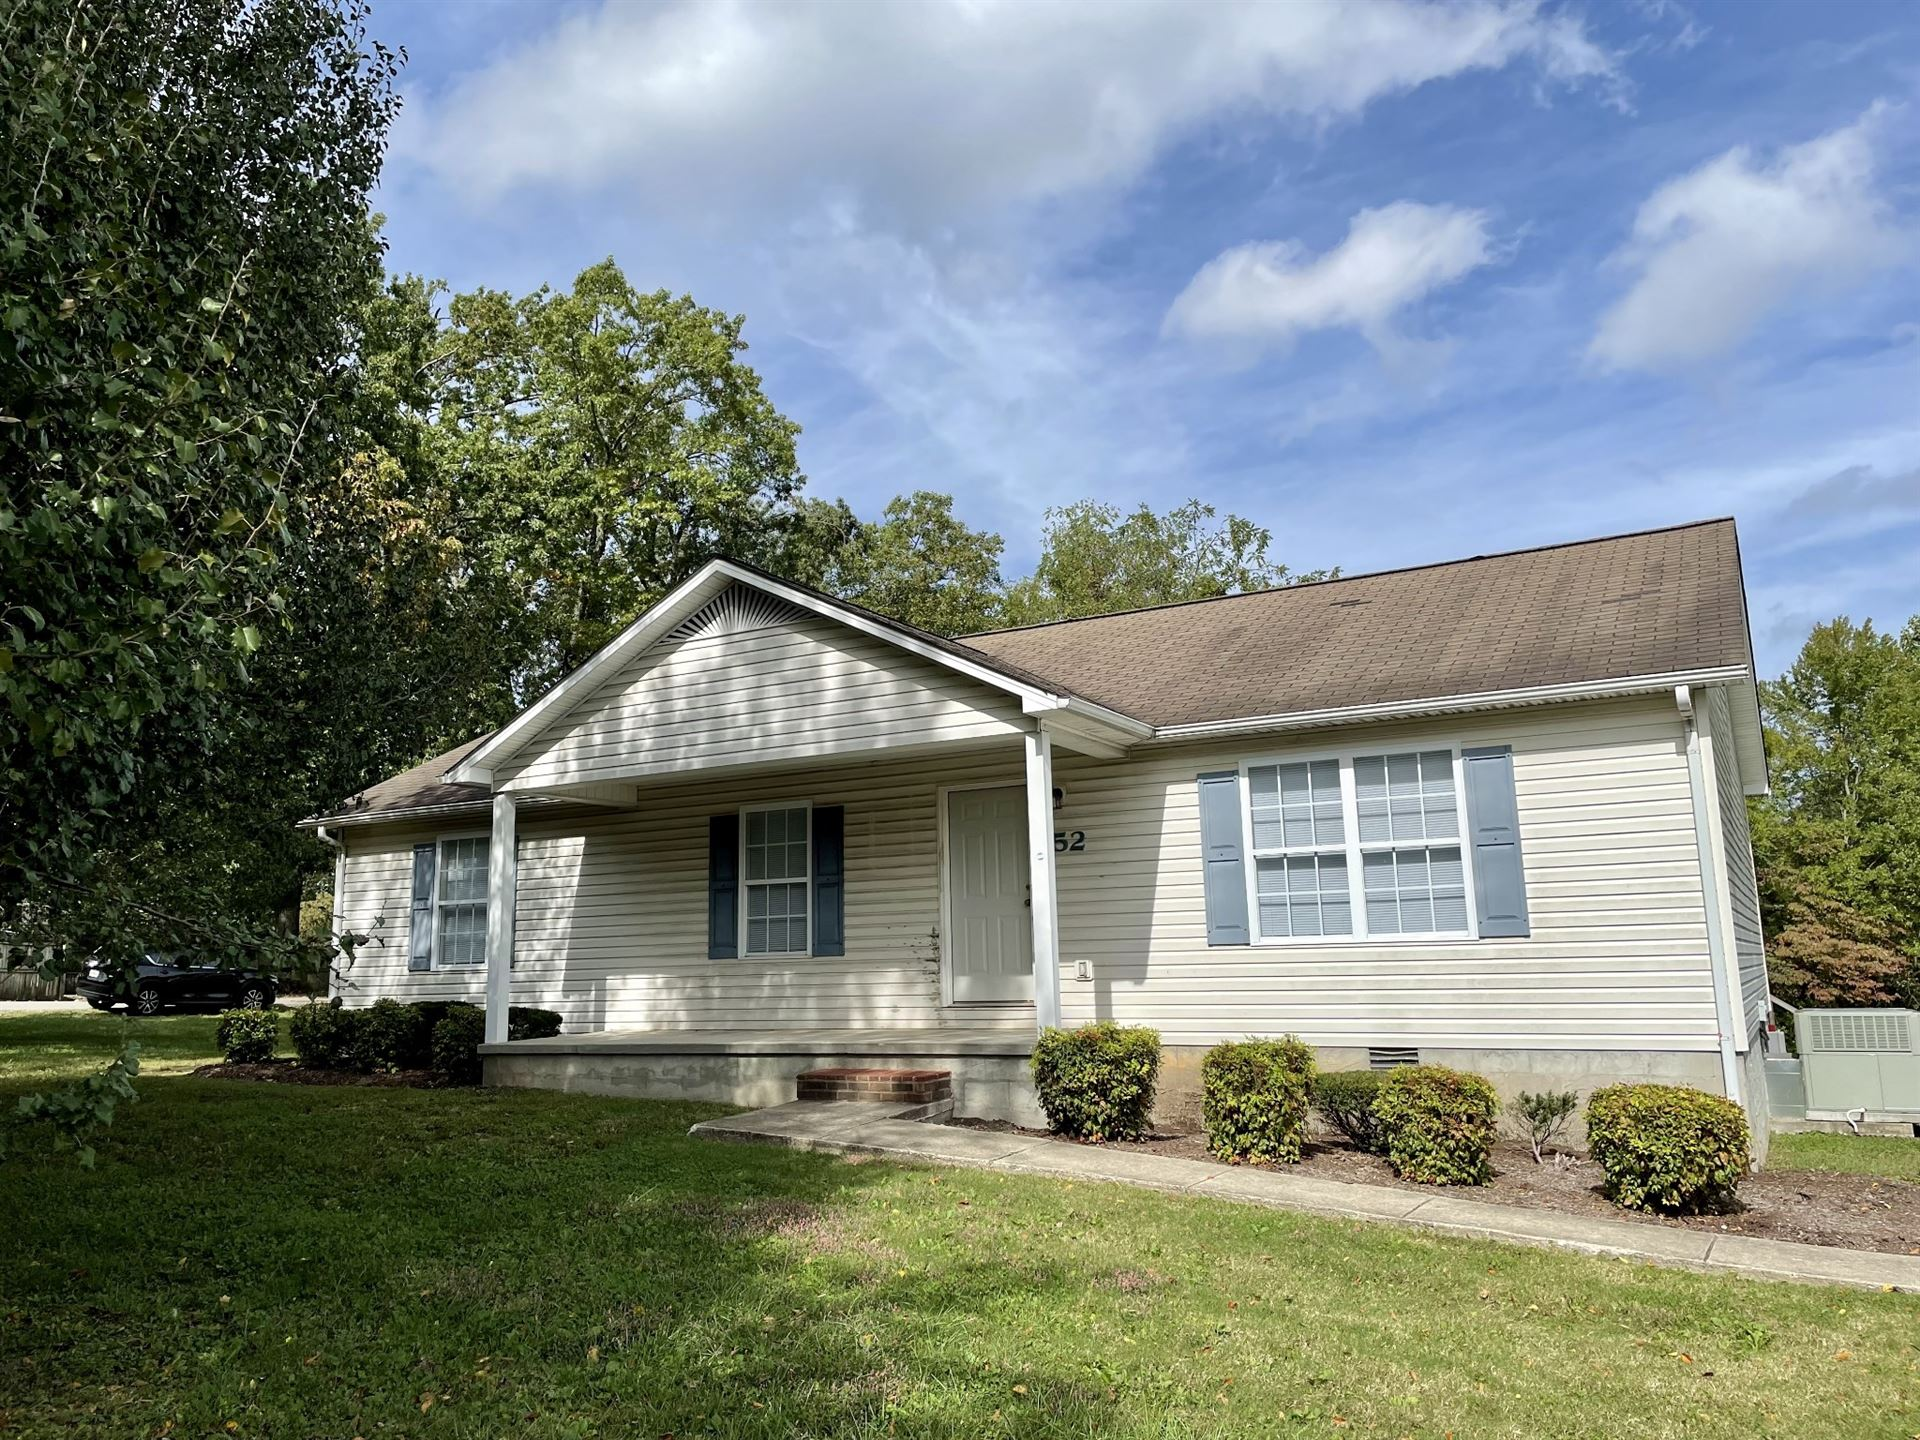 452 Bryce Dr, Cookeville, TN 38501 - MLS#: 2299120